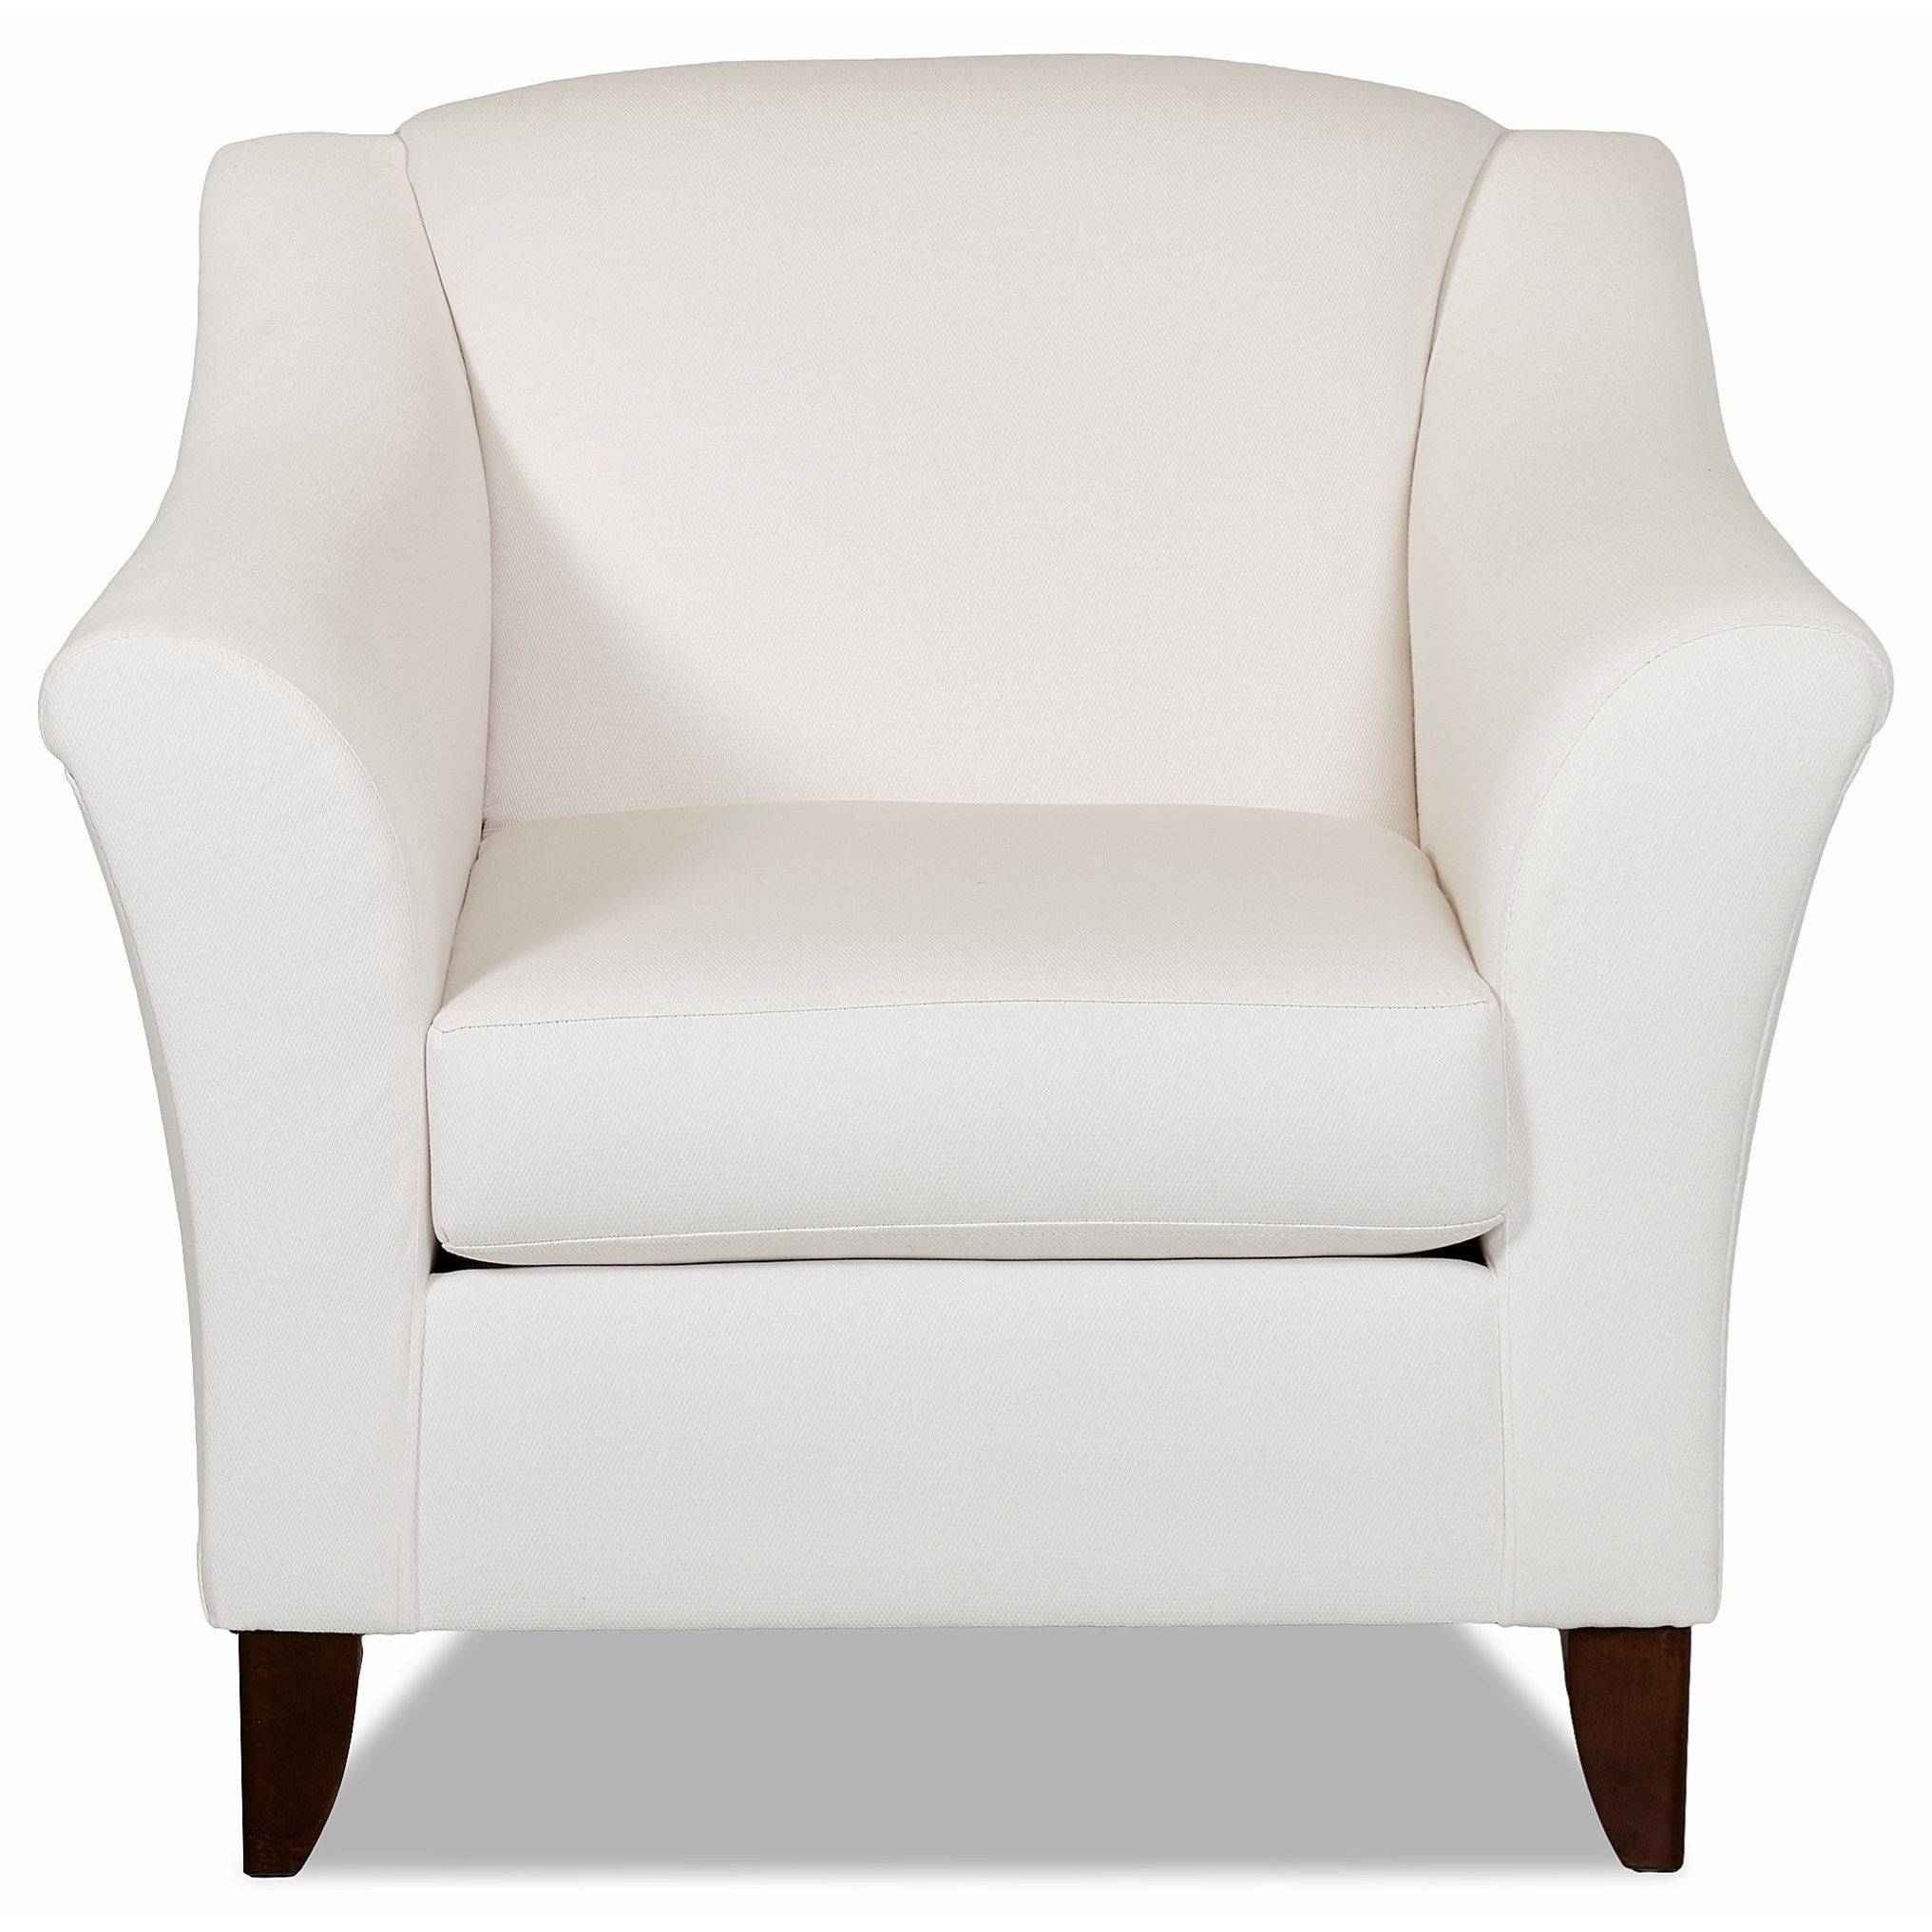 Contemporary Upholstered Chair with Flared Arms